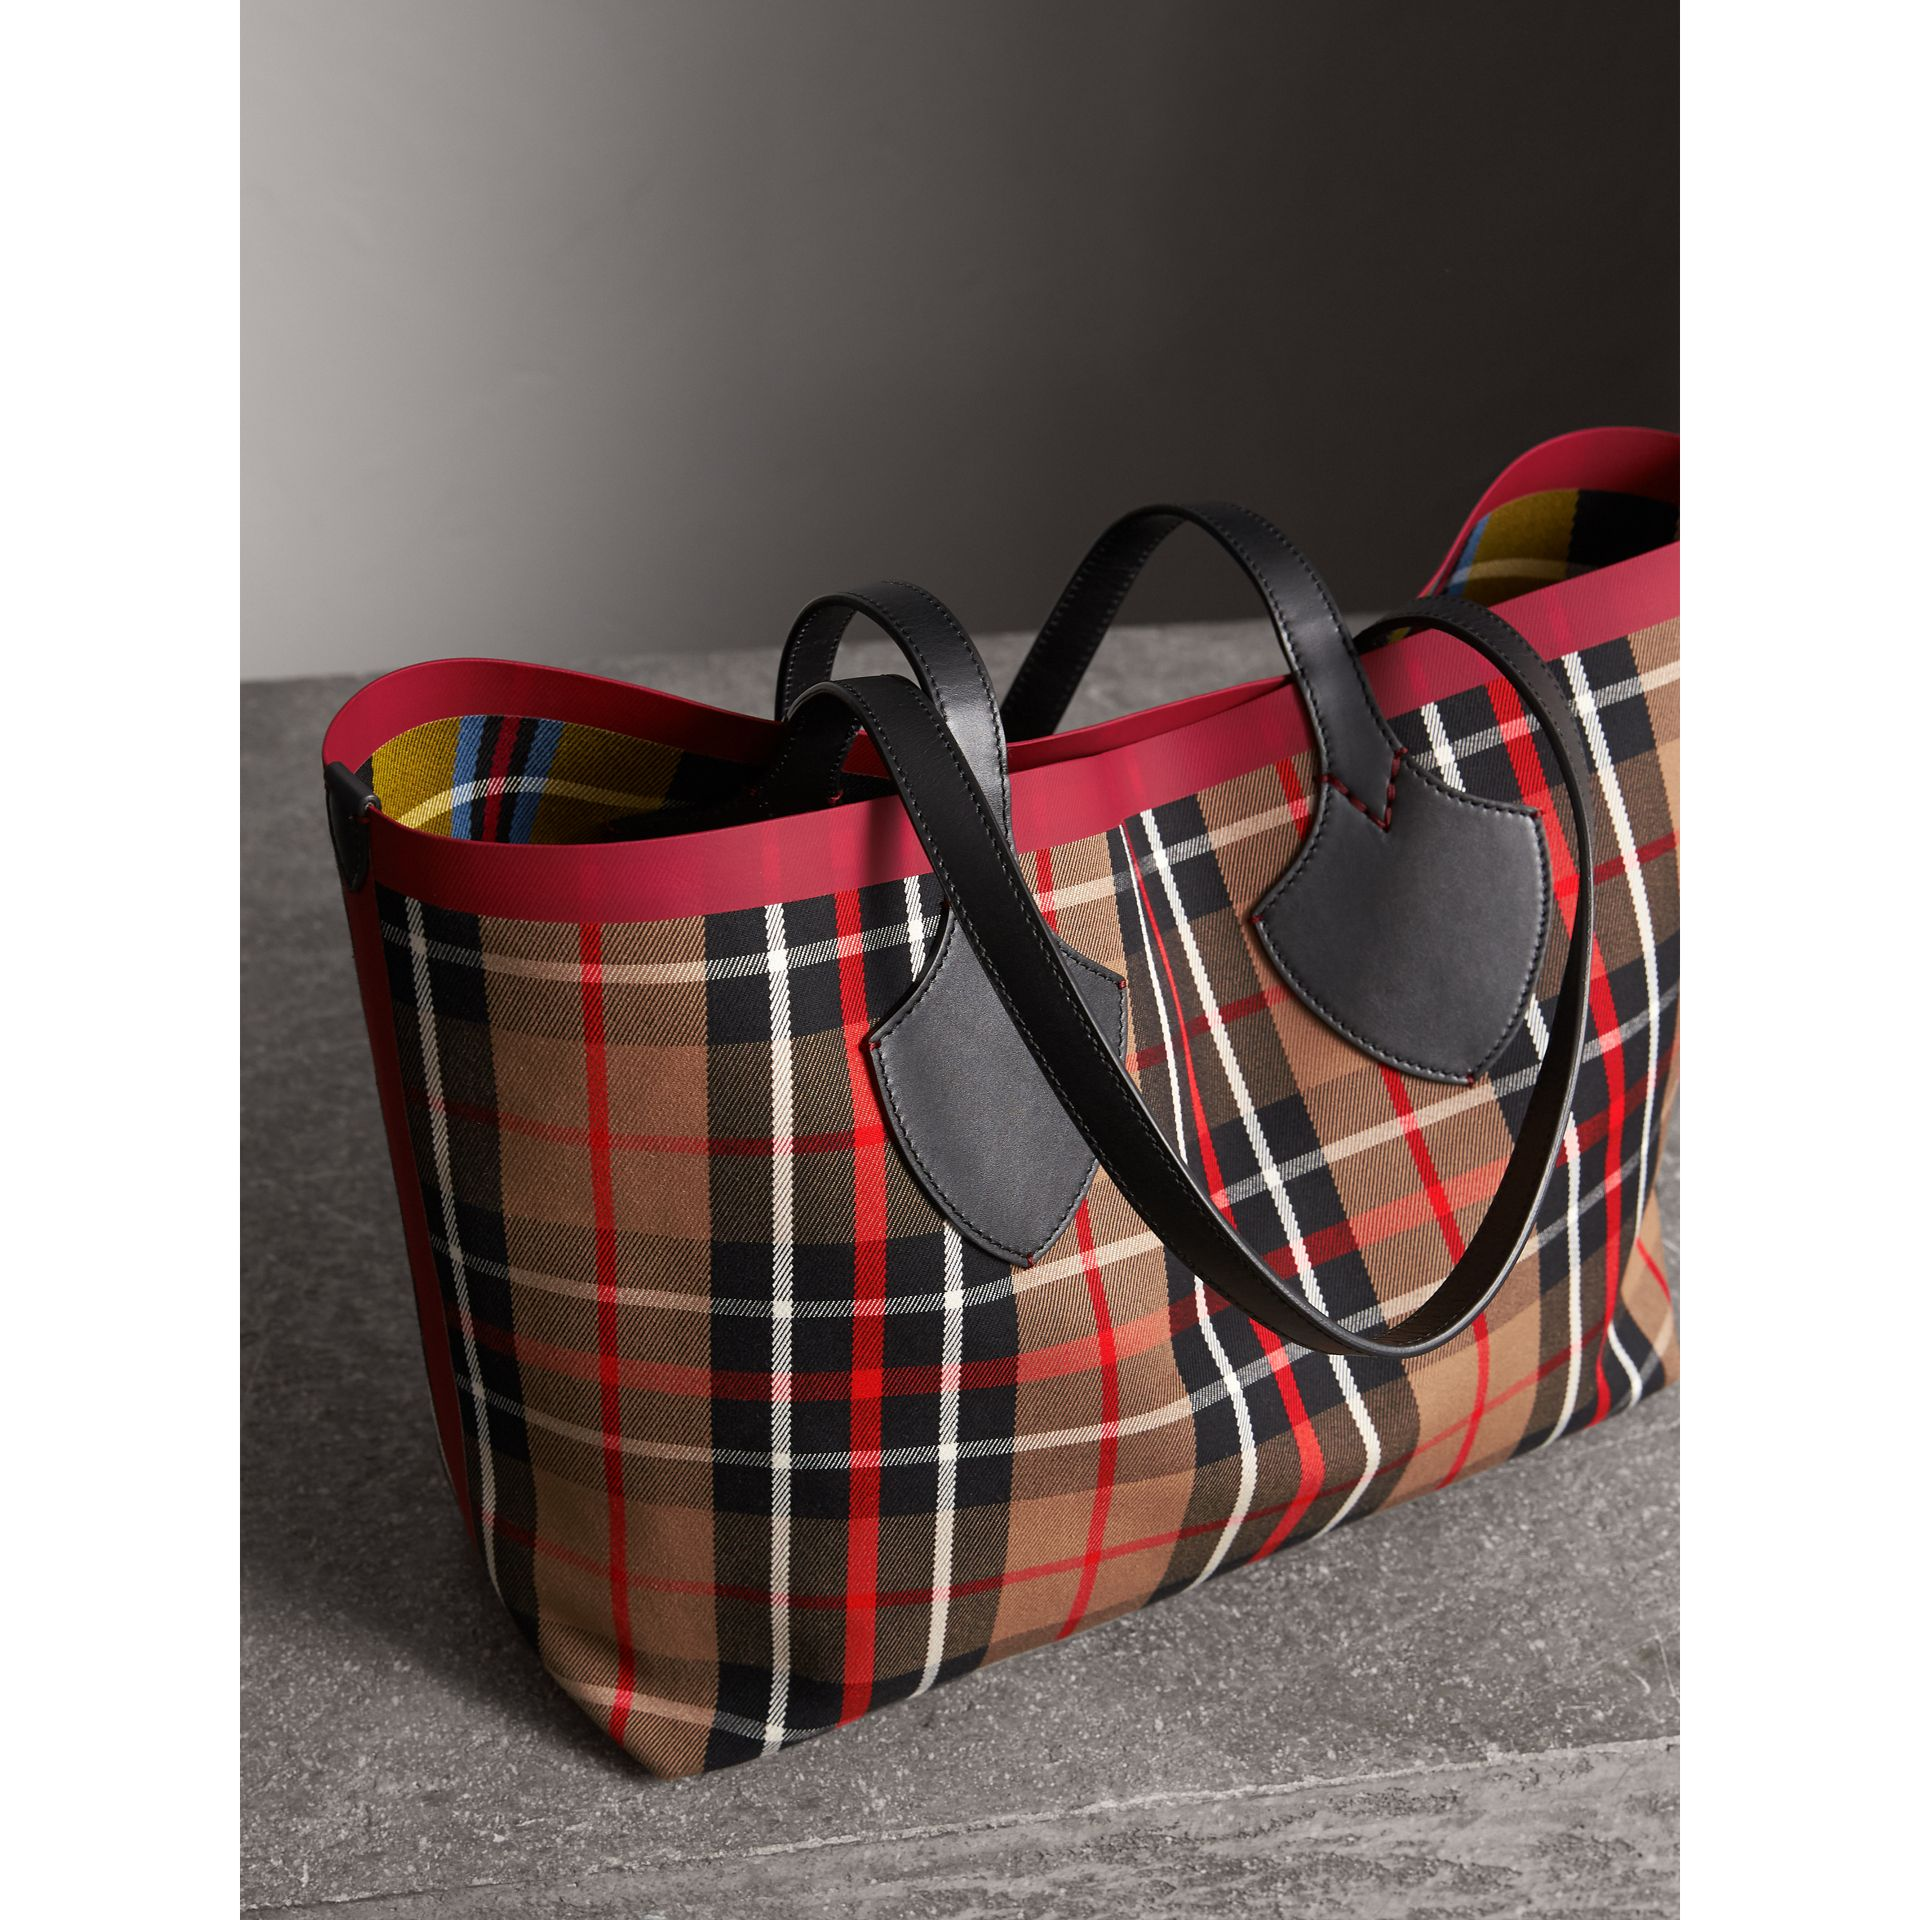 Borsa tote The Giant media double face in cotone con motivo tartan (Caramello/giallo Lino) | Burberry - immagine della galleria 5